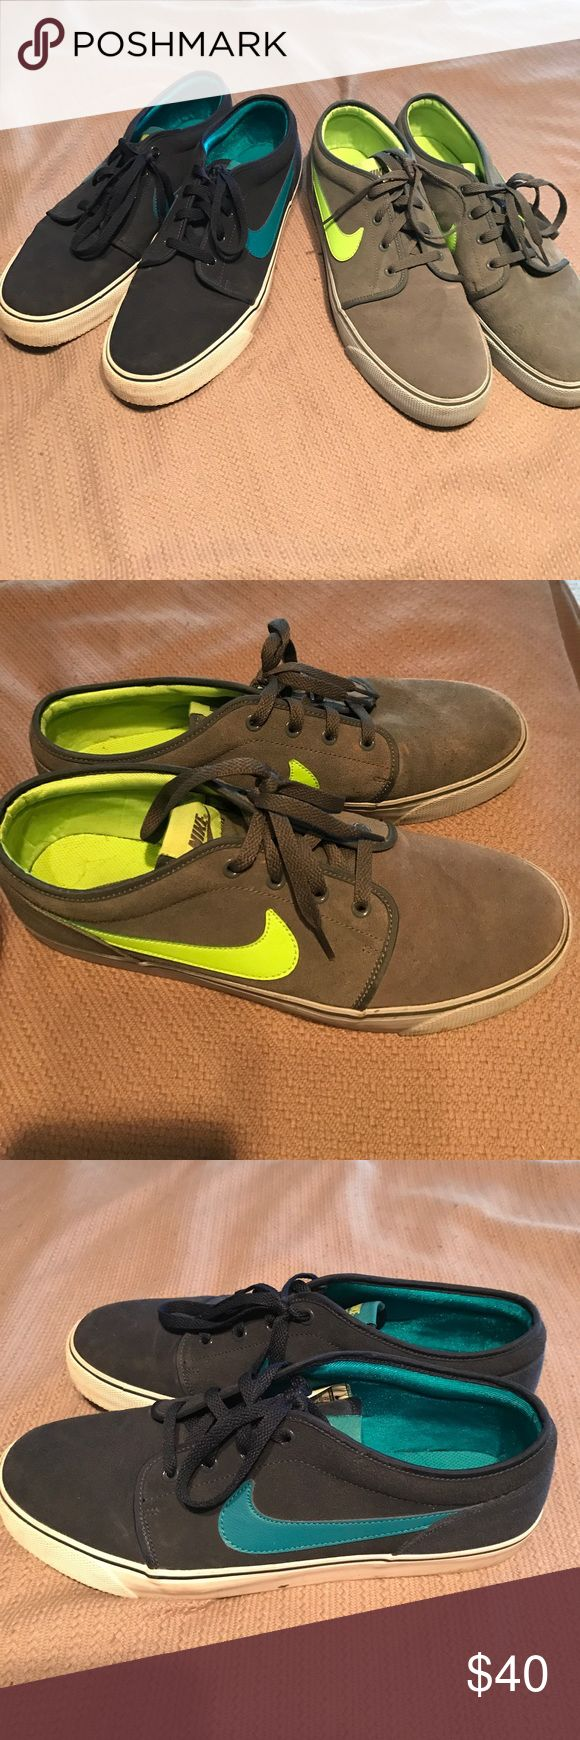 2 pairs of Nike dress shoes (can lower prices) Two pairs of Nike dress shoes… Worth it it's a steal! Nike Shoes Sneakers